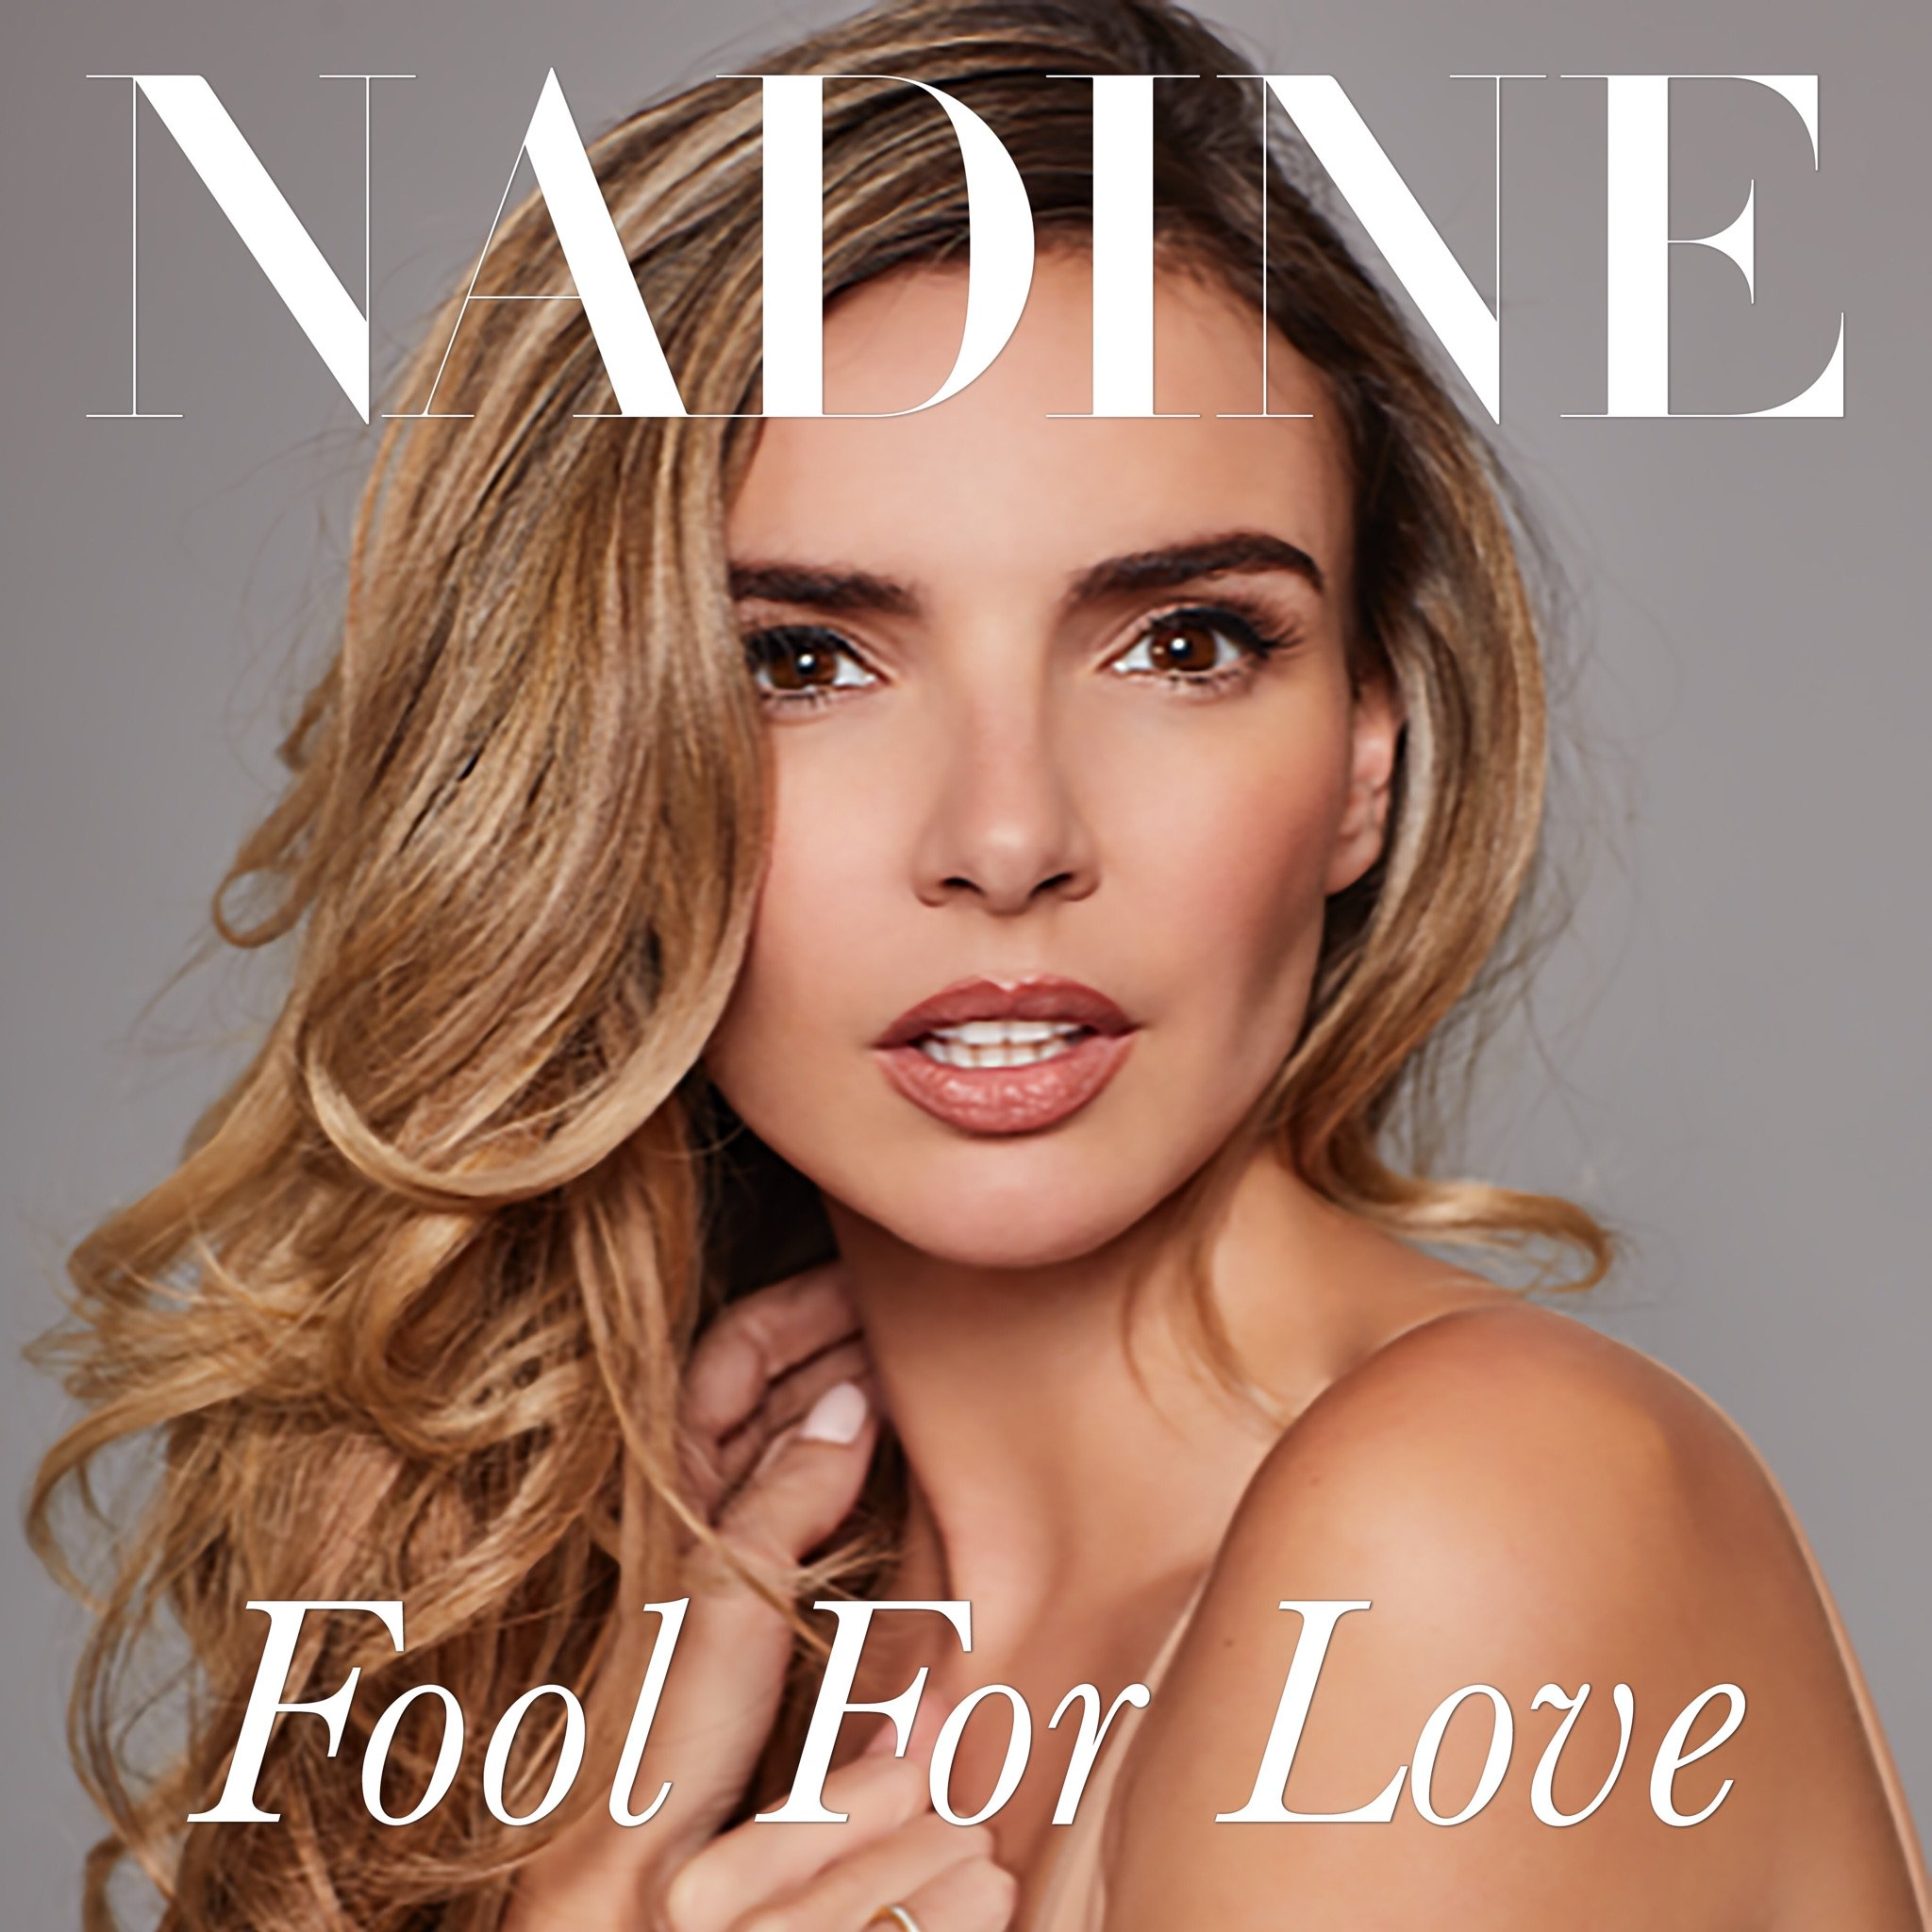 Nadine Coyle >> Fool For Love - Página 10 D6i9RcDW4AI0c4A